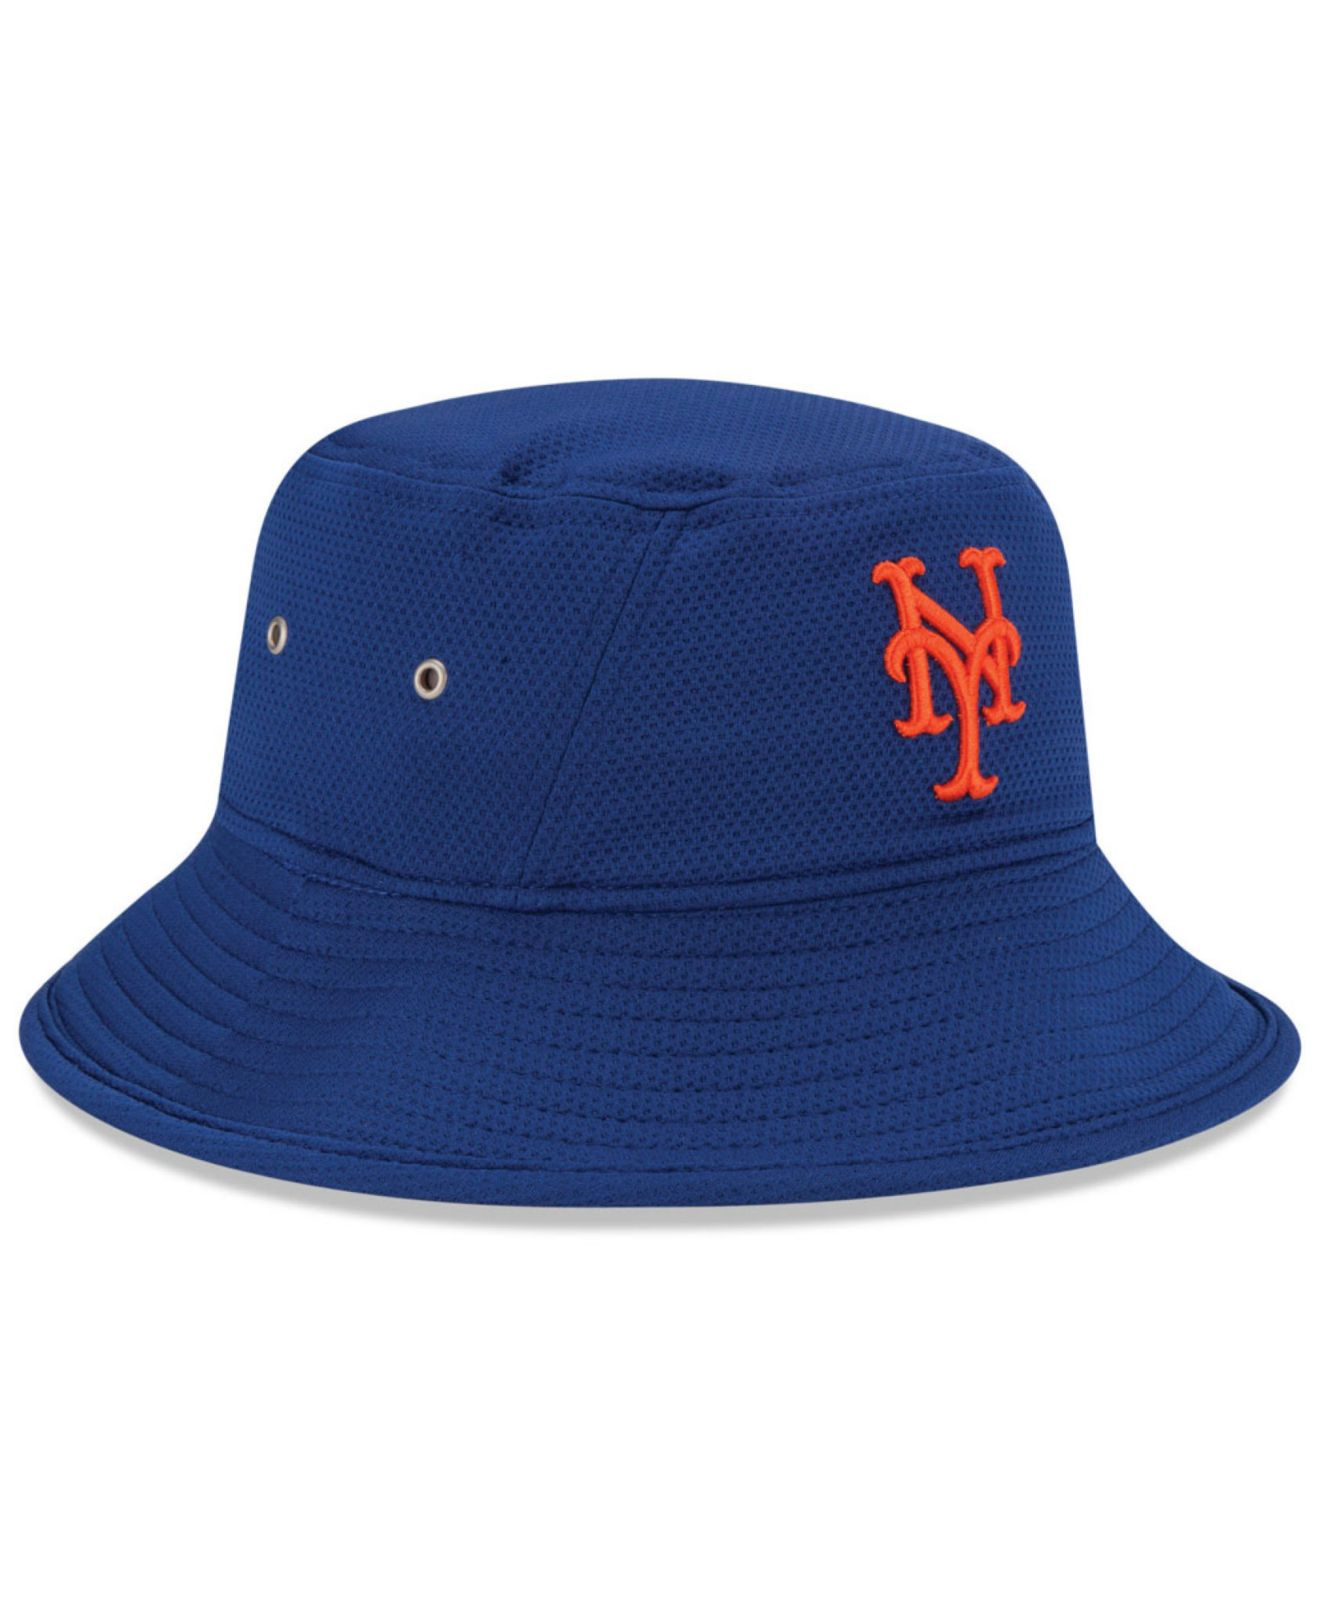 d494205031c63 ... uk lyst ktz new york mets redux bucket hat in blue 27031 6f1ce